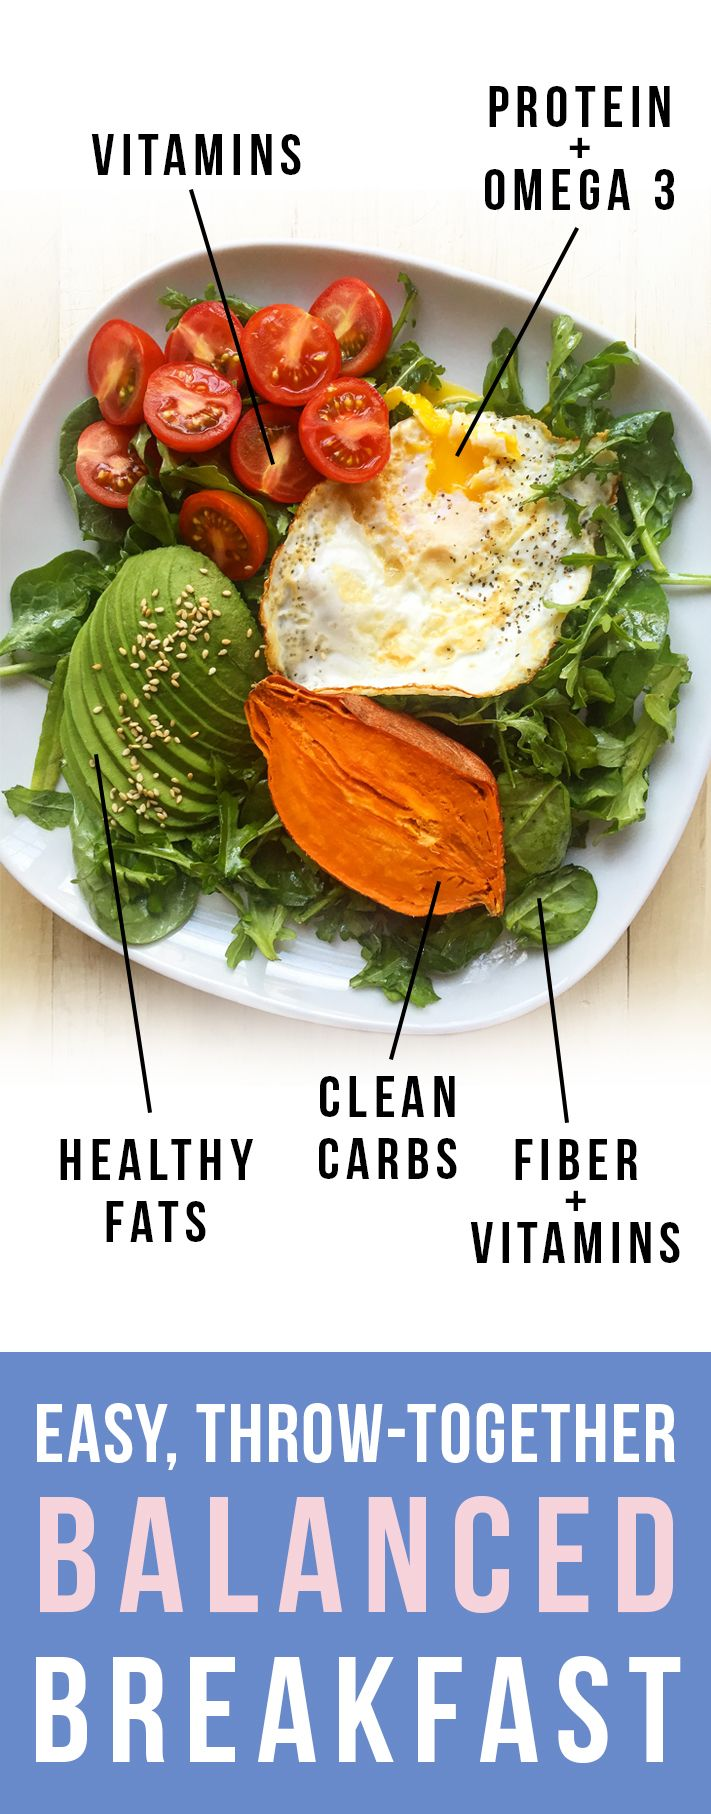 25 Best Healthy Eating Plate Ideas On Pinterest Healthy Plate in Balance Food For Healthy Life